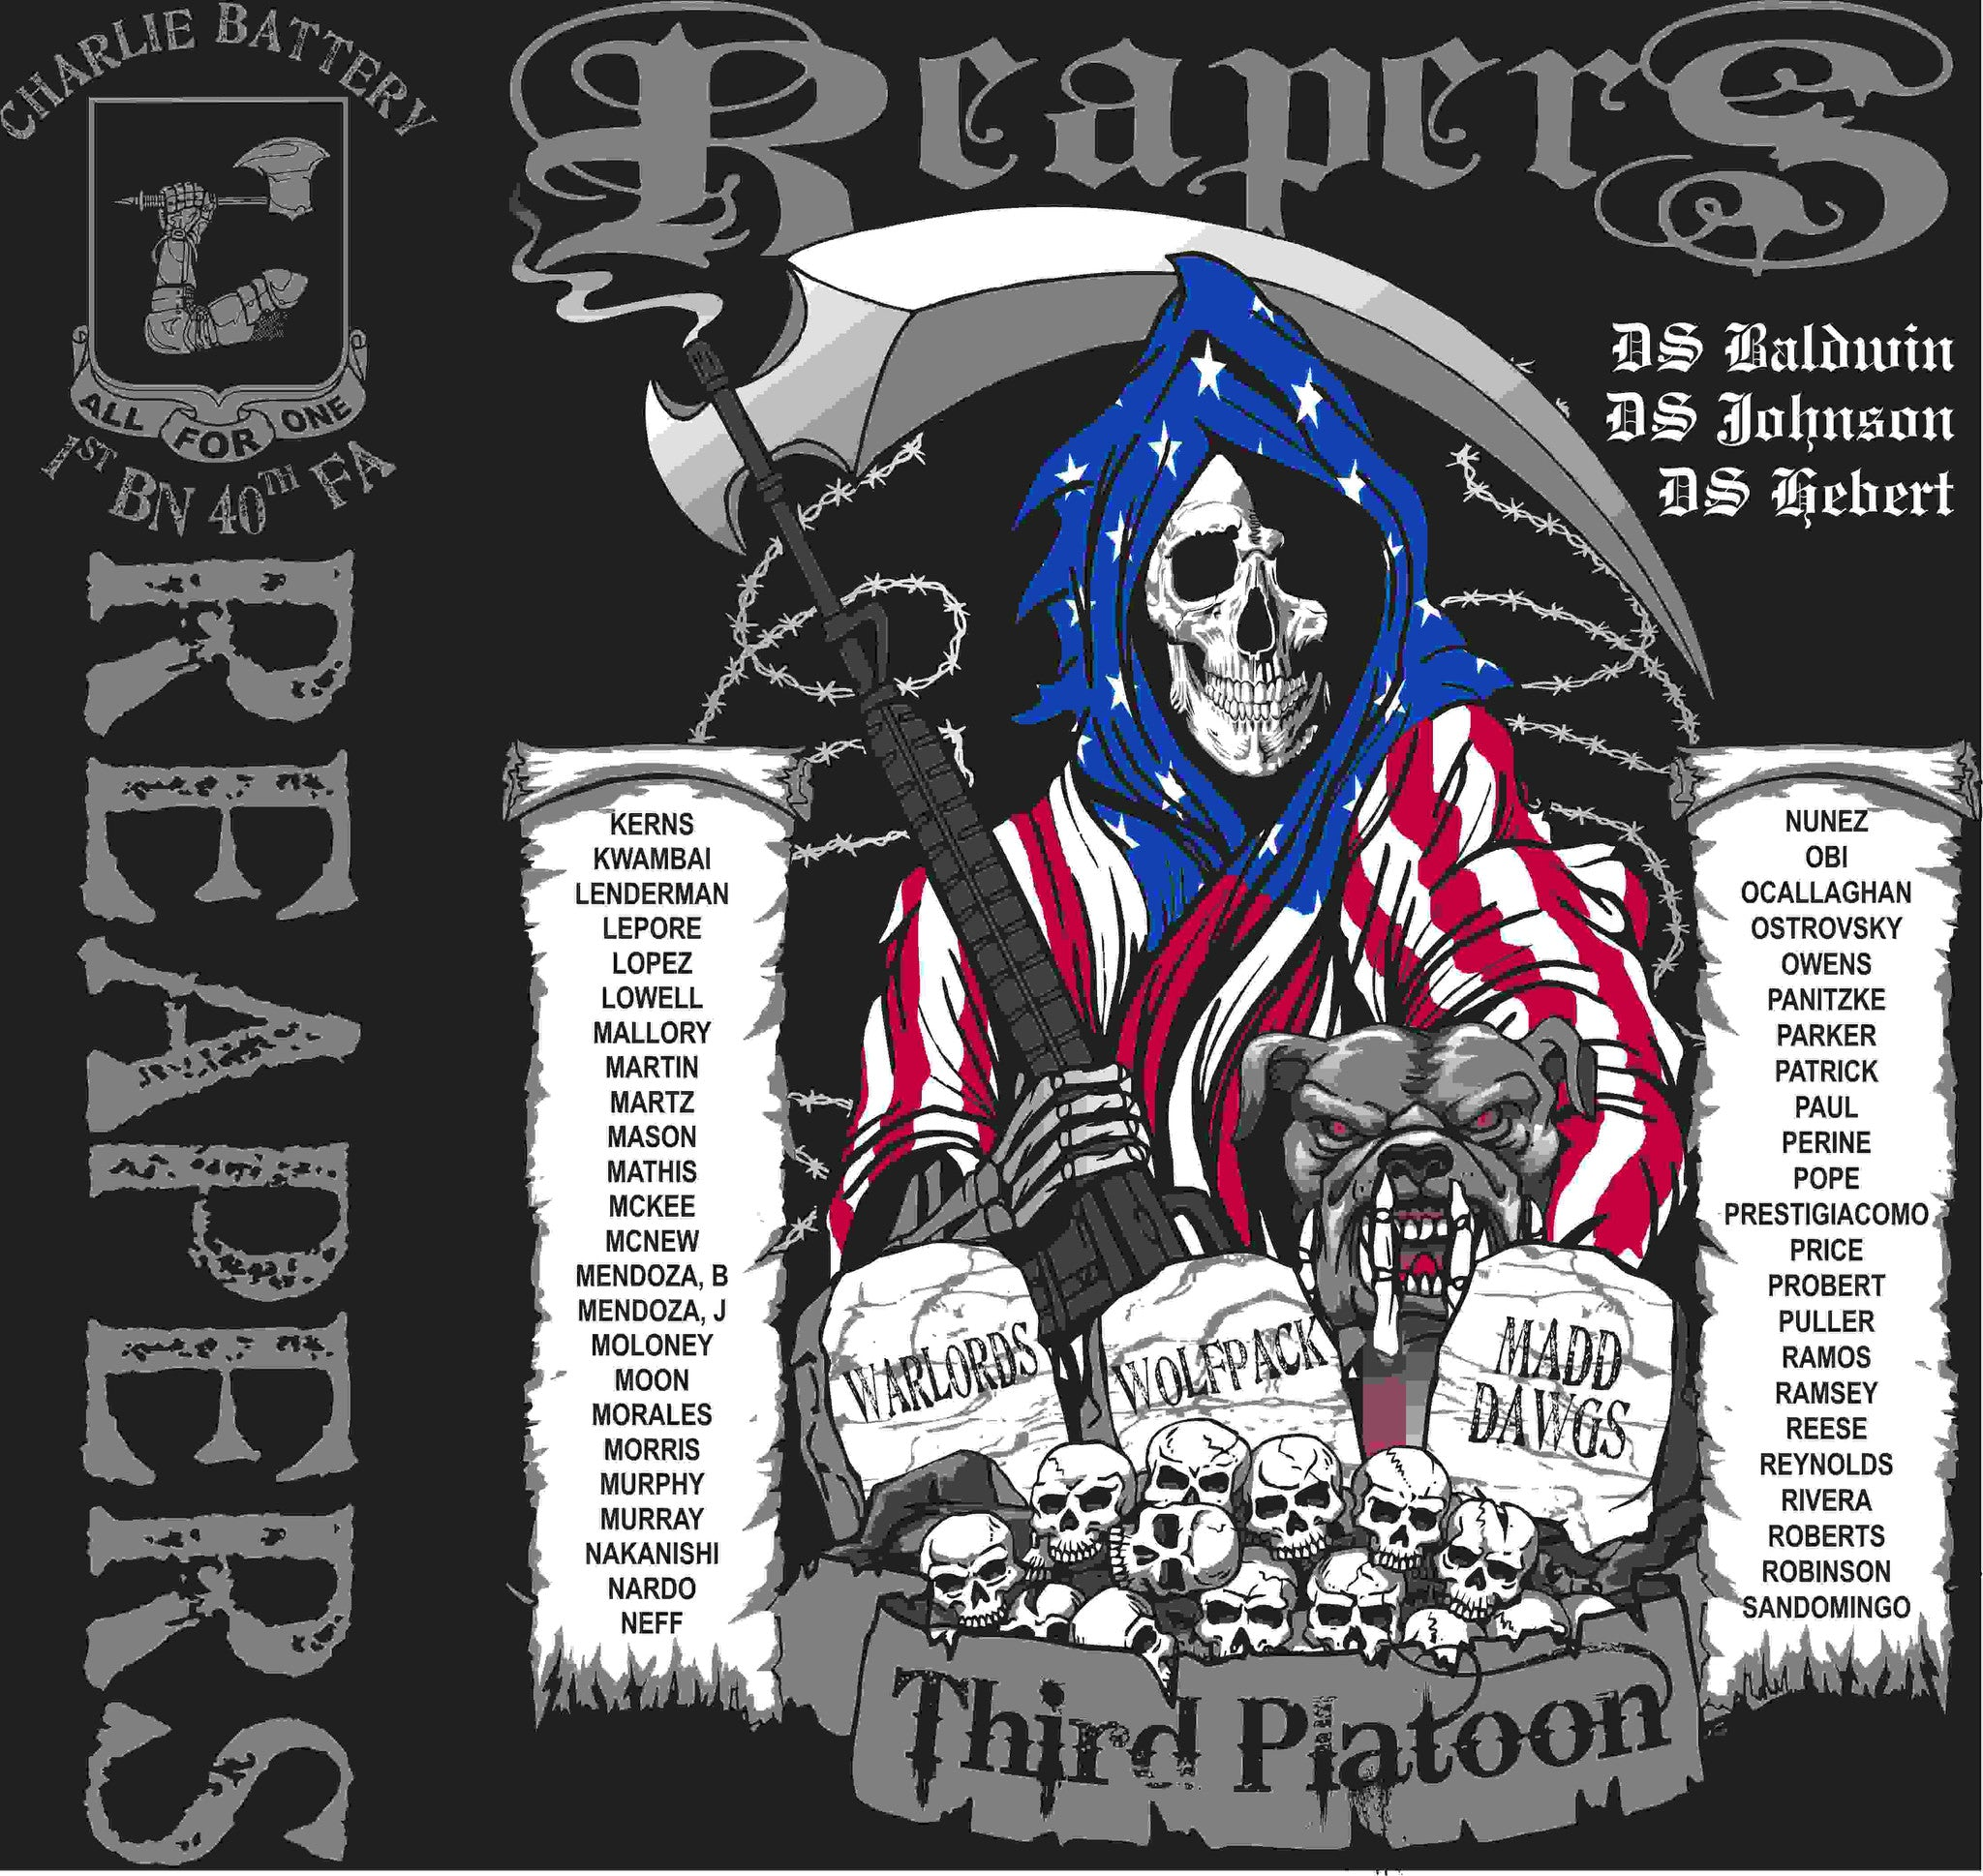 PLATOON SHIRTS (2nd generation print) CHARLIE 1st 40th REAPERS MAY 2016